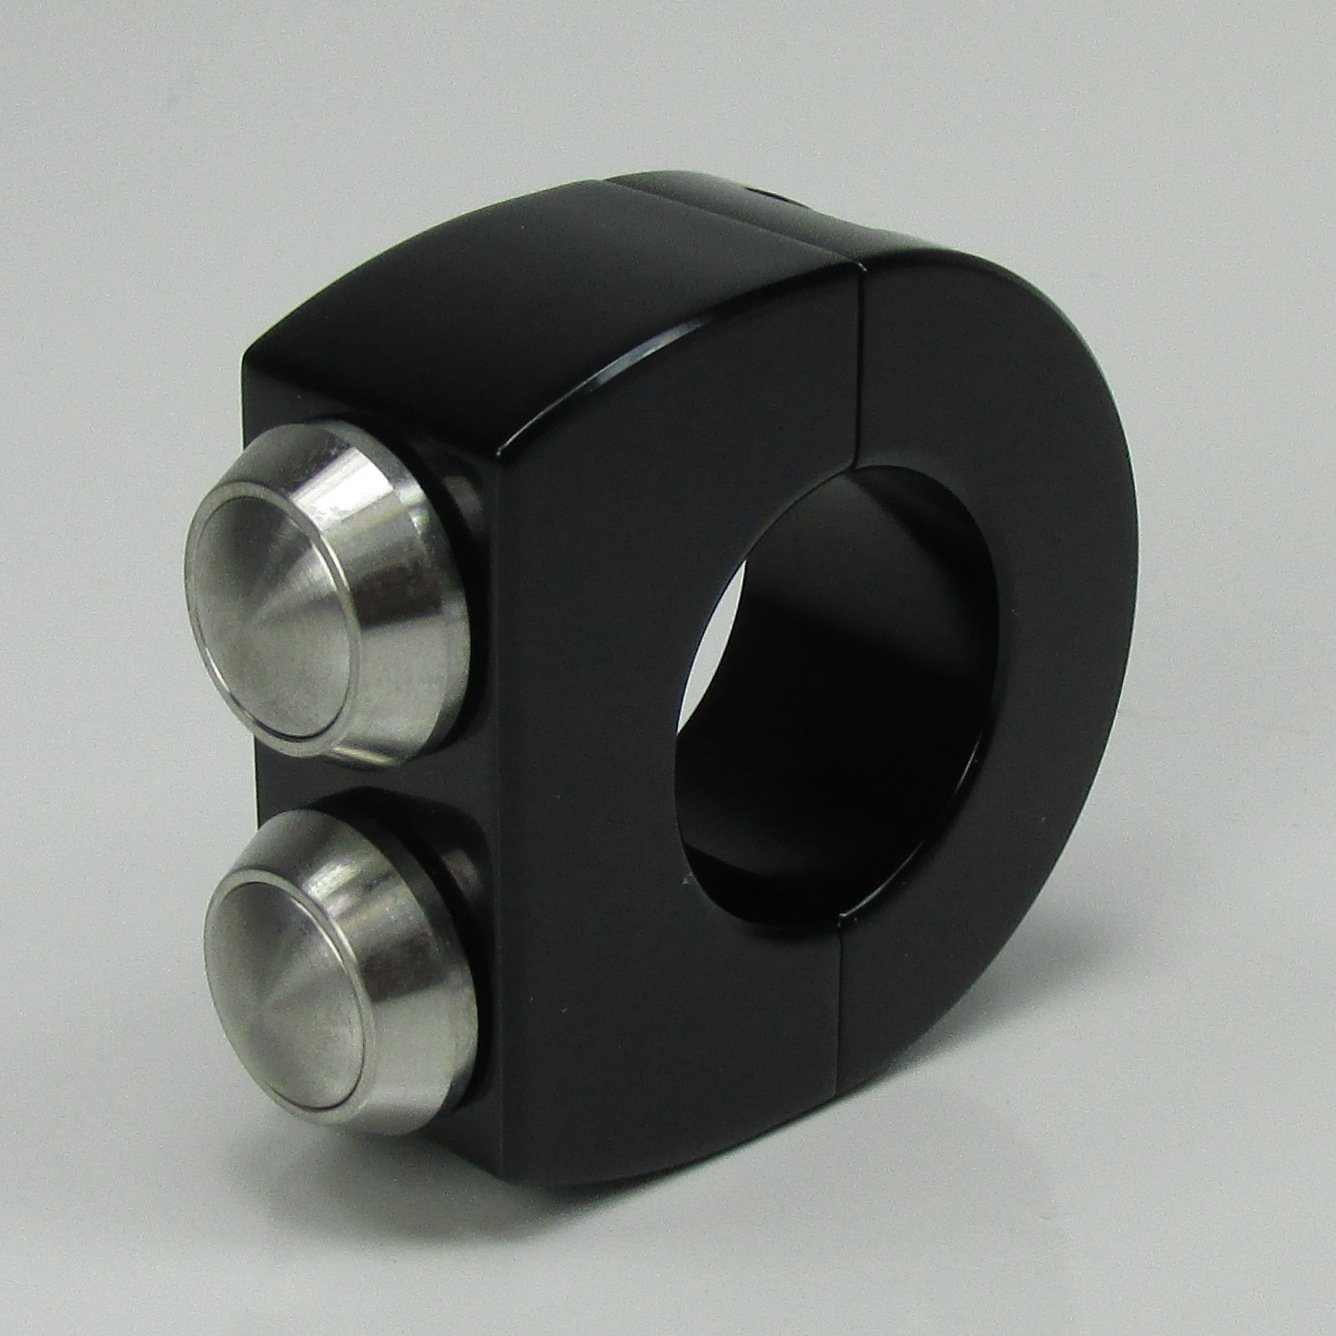 Custom 2-Button Satin BLACK Billet Aluminum Handlebar Switches Clamp for 1' Bars - Internally Wire Horn and Starter Switches - Can also be used with High/Low Beams - Custom Chopper Bobber HD Billet Proof Designs CLTCH_MS